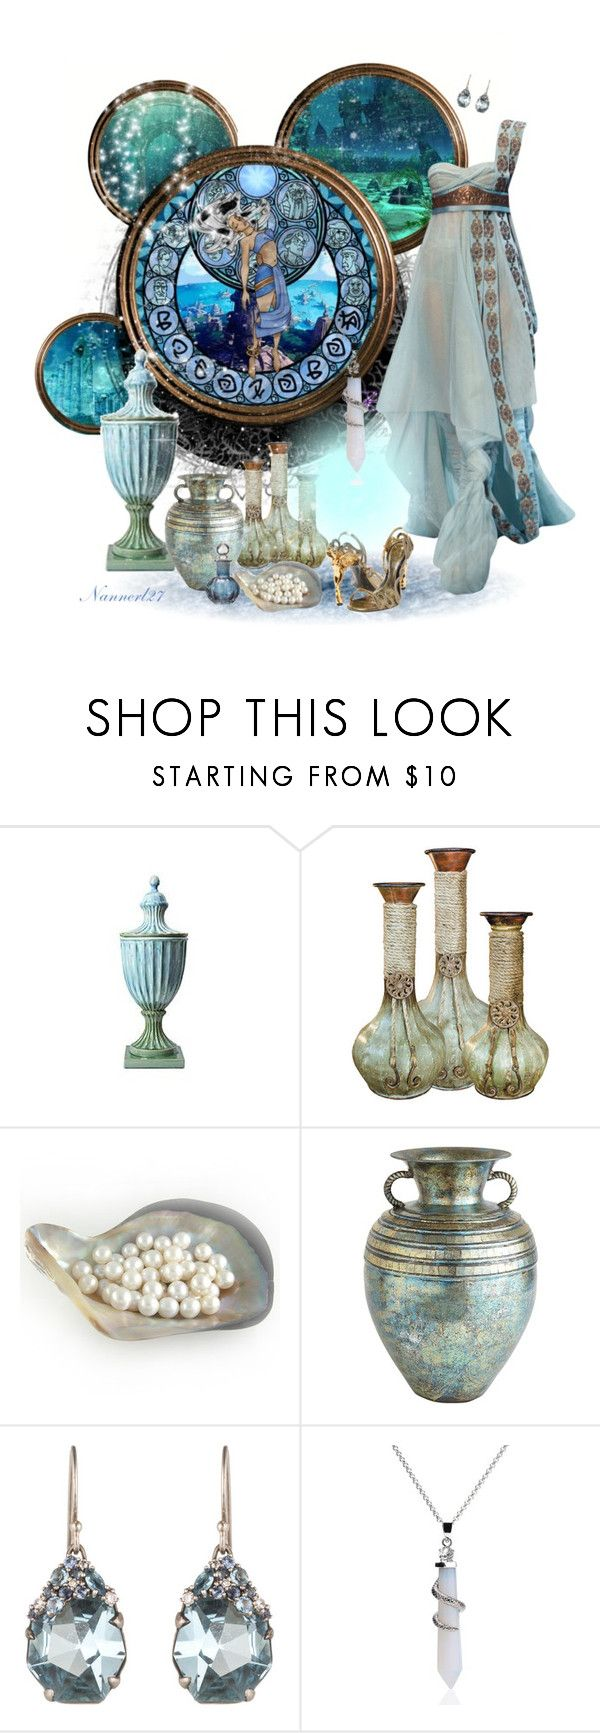 """Kira,Princess of Atlantis"" by nannerl27forever ❤ liked on Polyvore featuring Atlantis, Pier 1 Imports, J. Peterman, Alexis Bittar and Alexander McQueen"